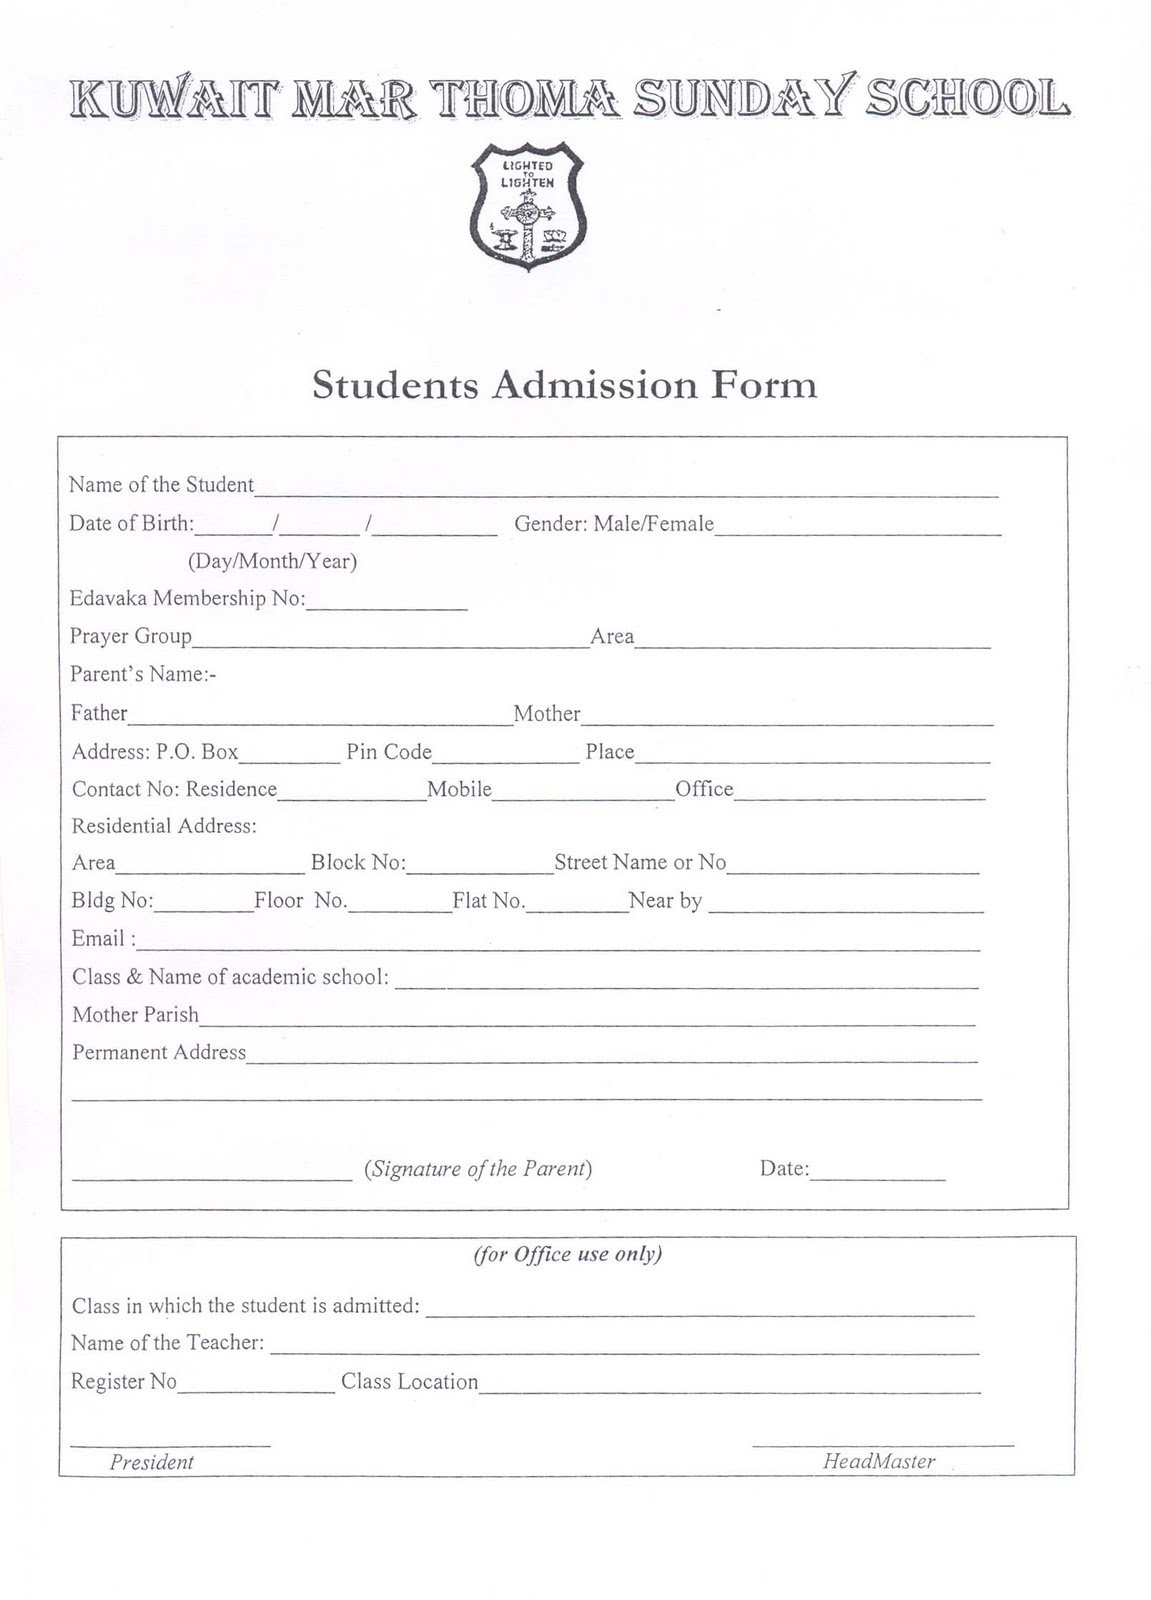 Kuwait City Mar Thoma Parish Sunday School Admission Form